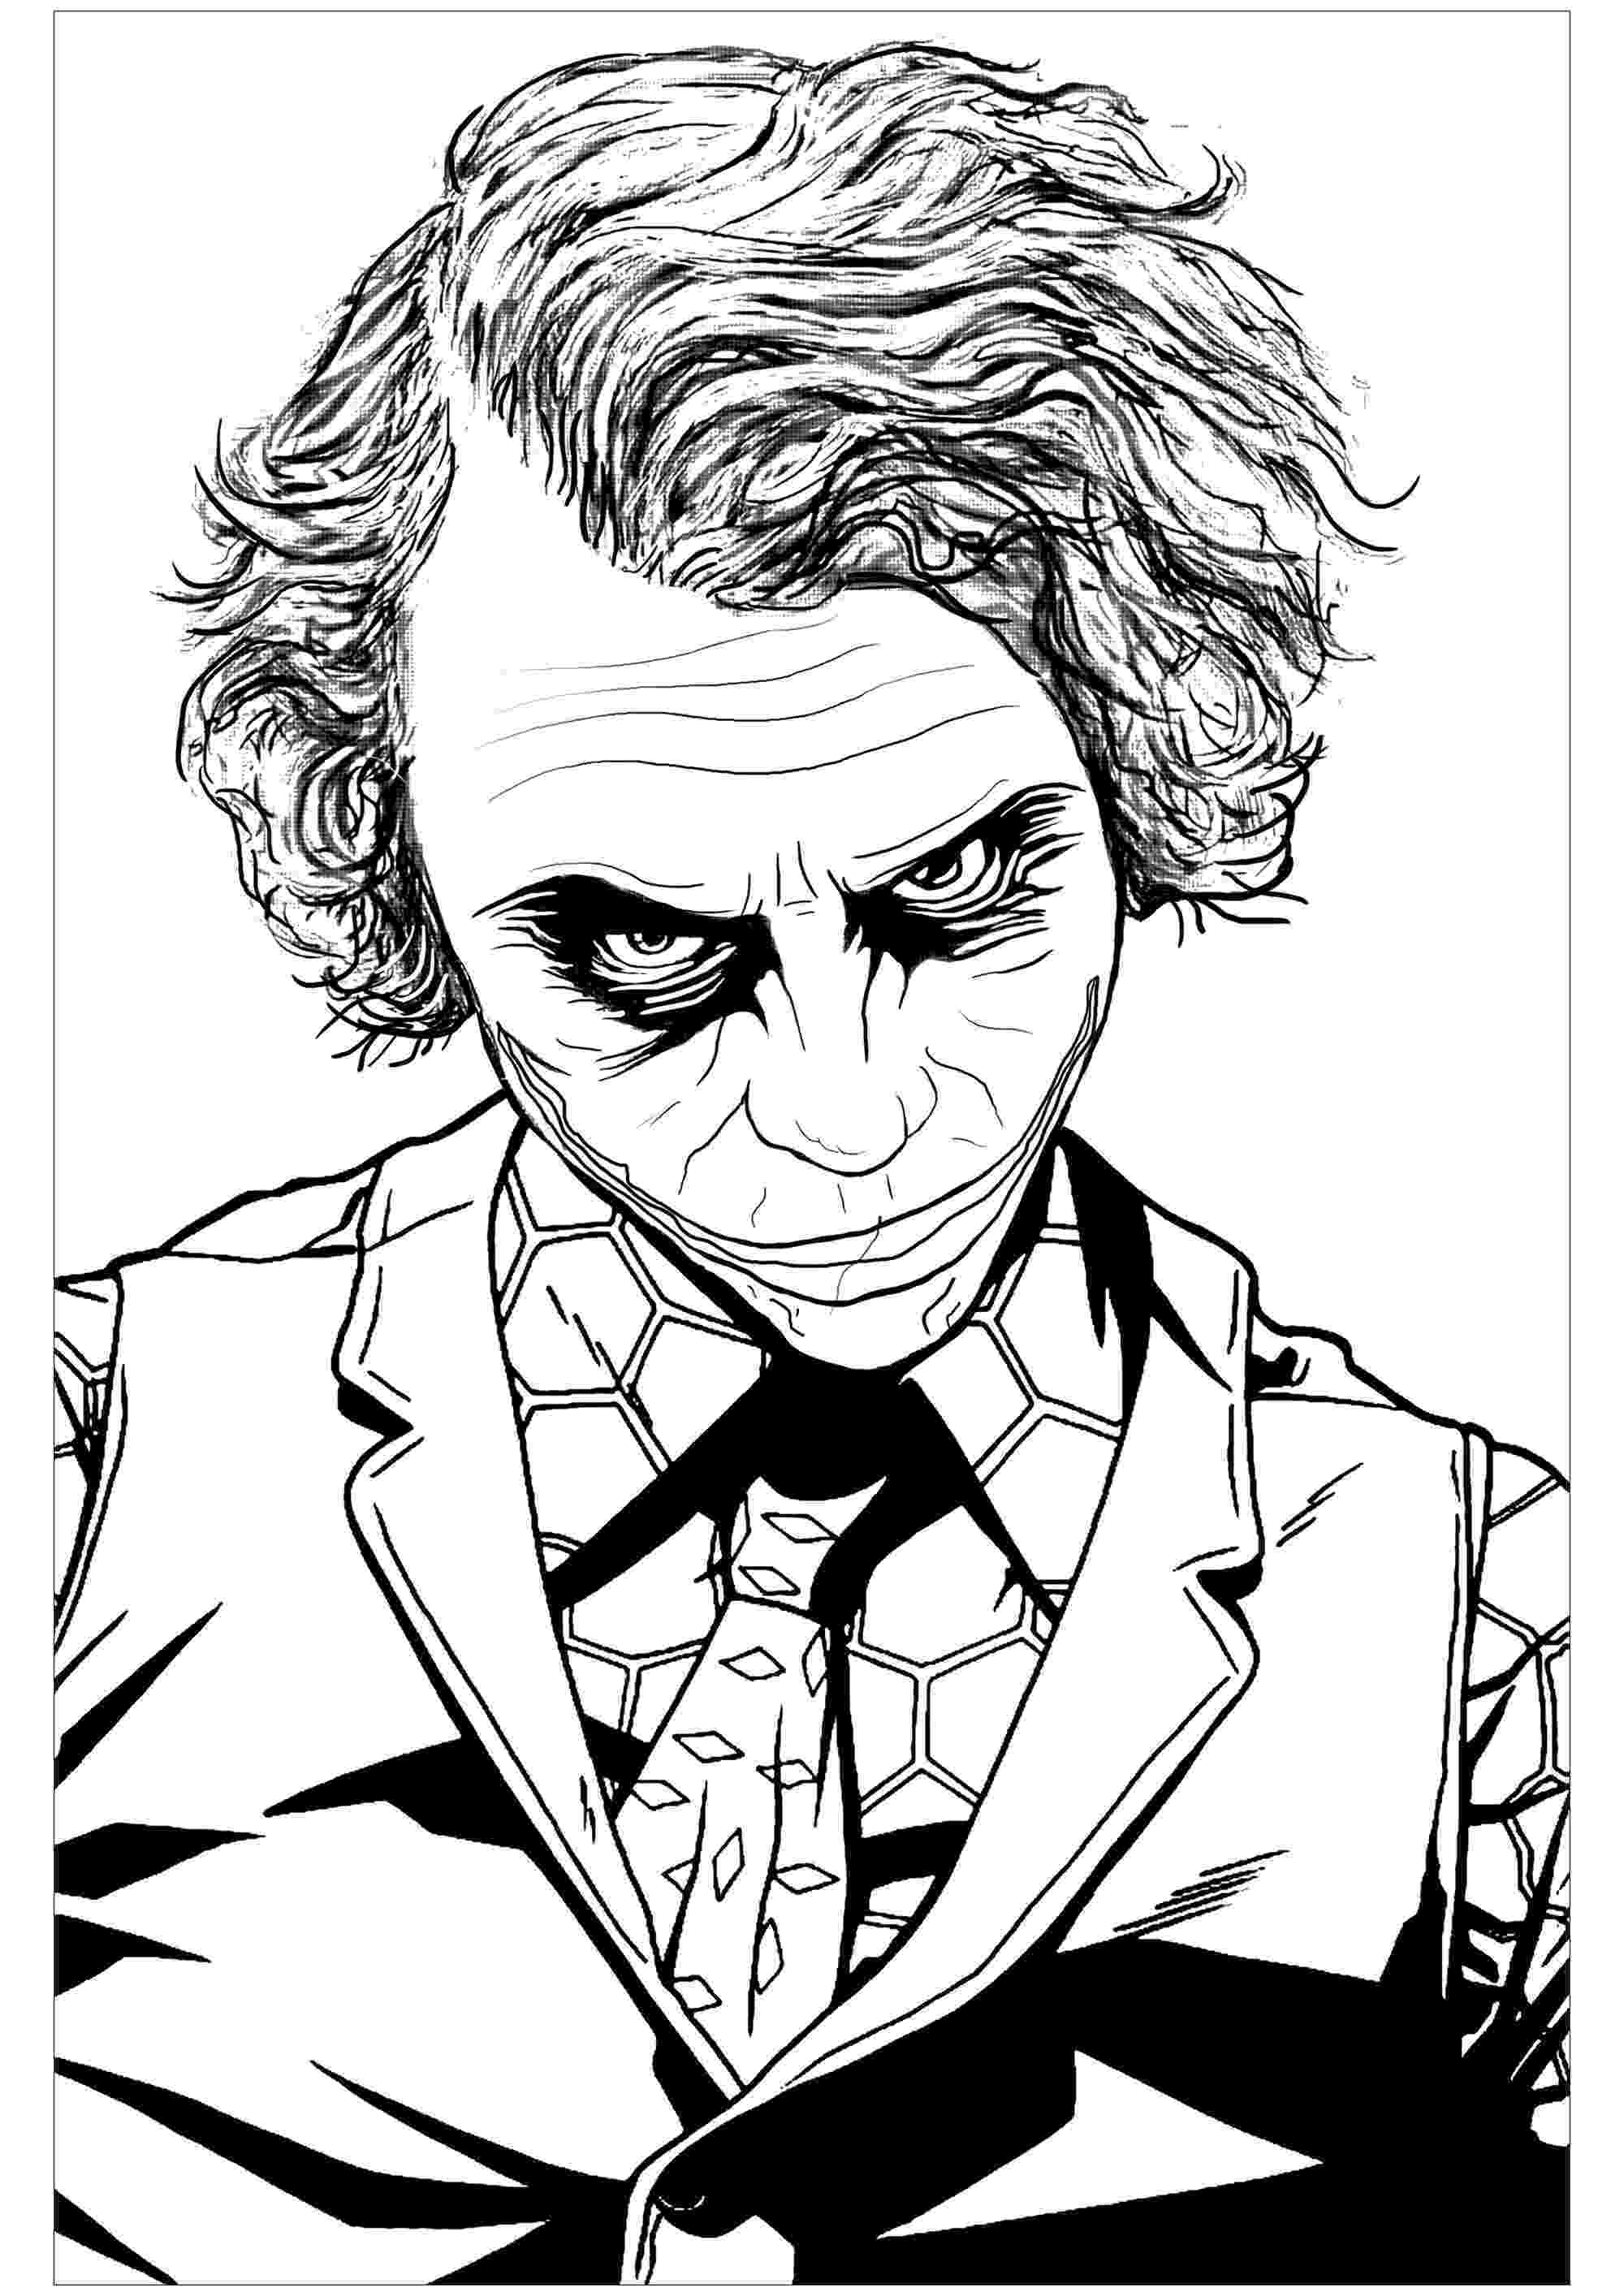 joker coloring pages printable joker coloring pages best coloring pages for kids printable joker coloring pages 1 1